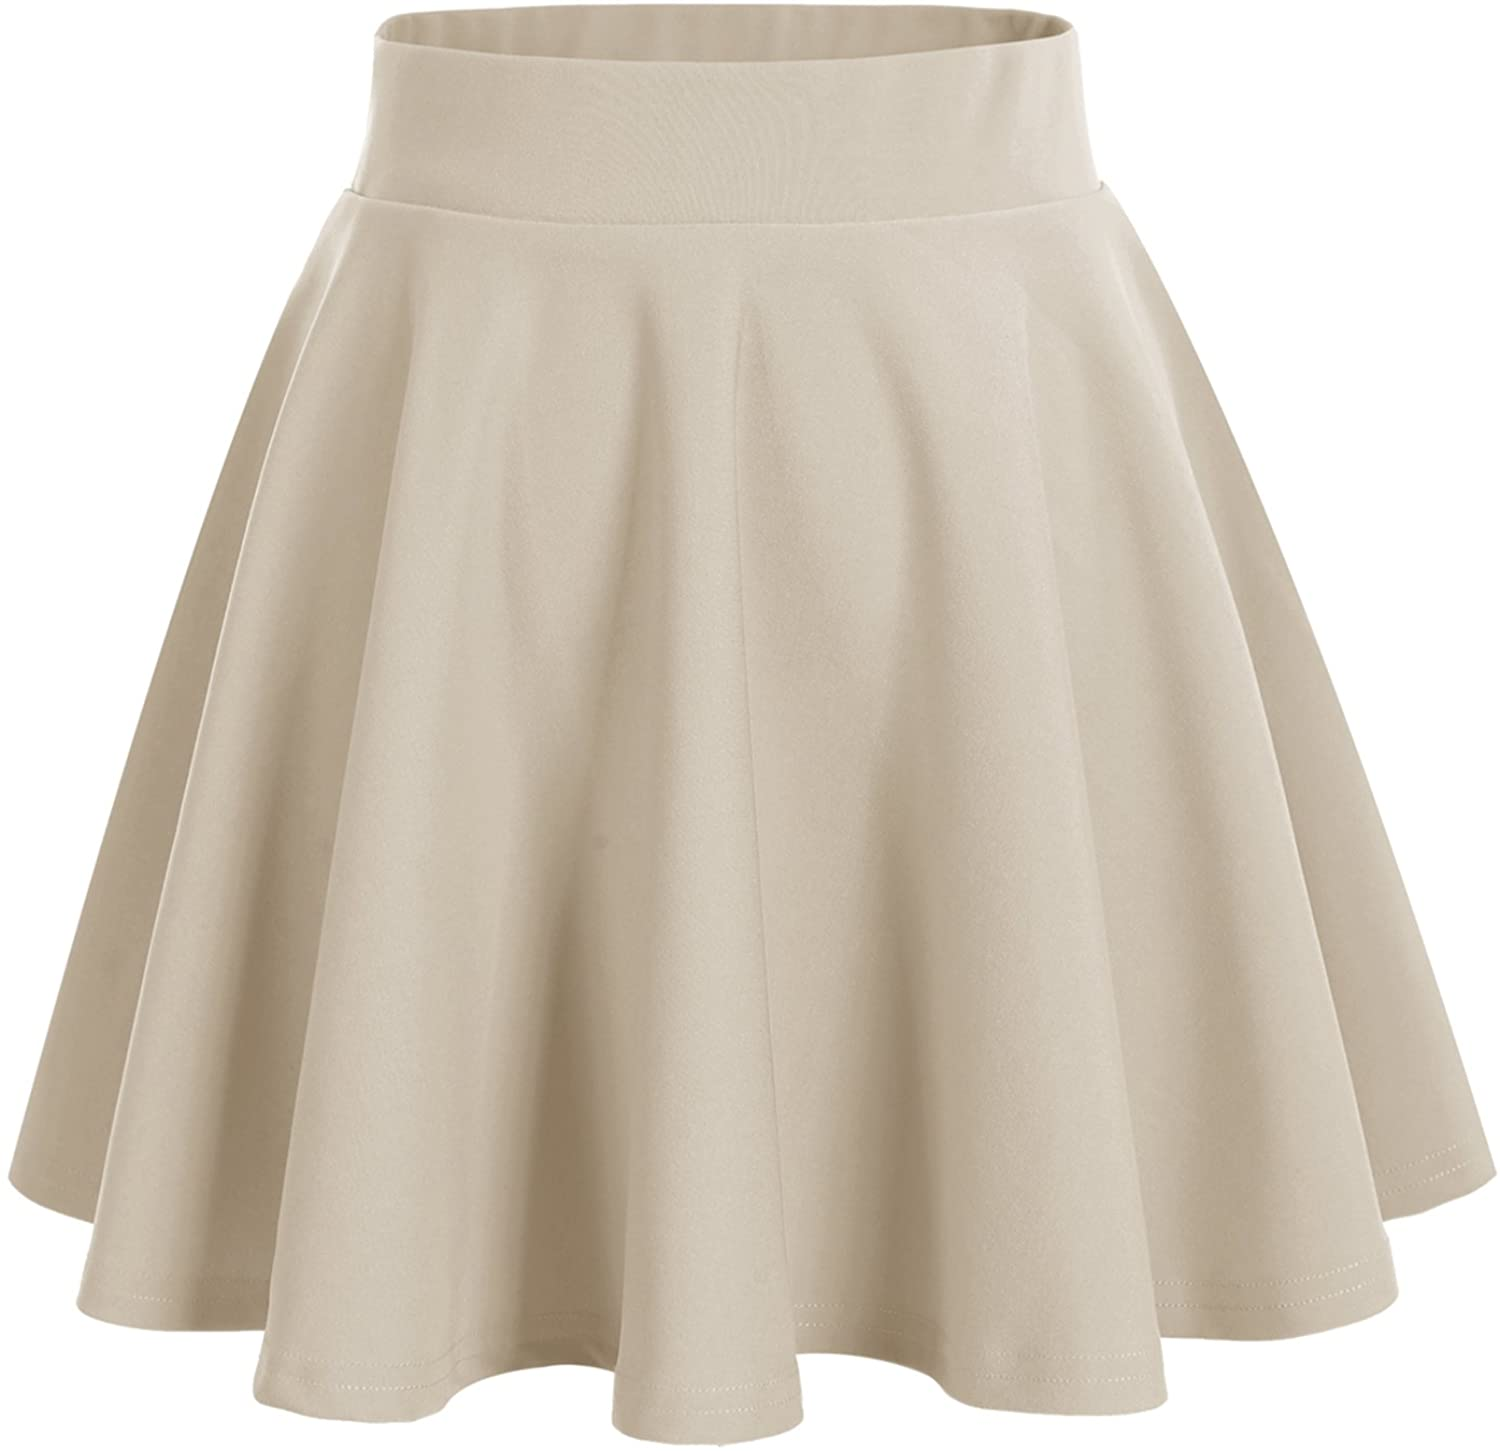 Bridesmay Women's Basic High Waist Casual Midi Skirt Stretchy Skirt